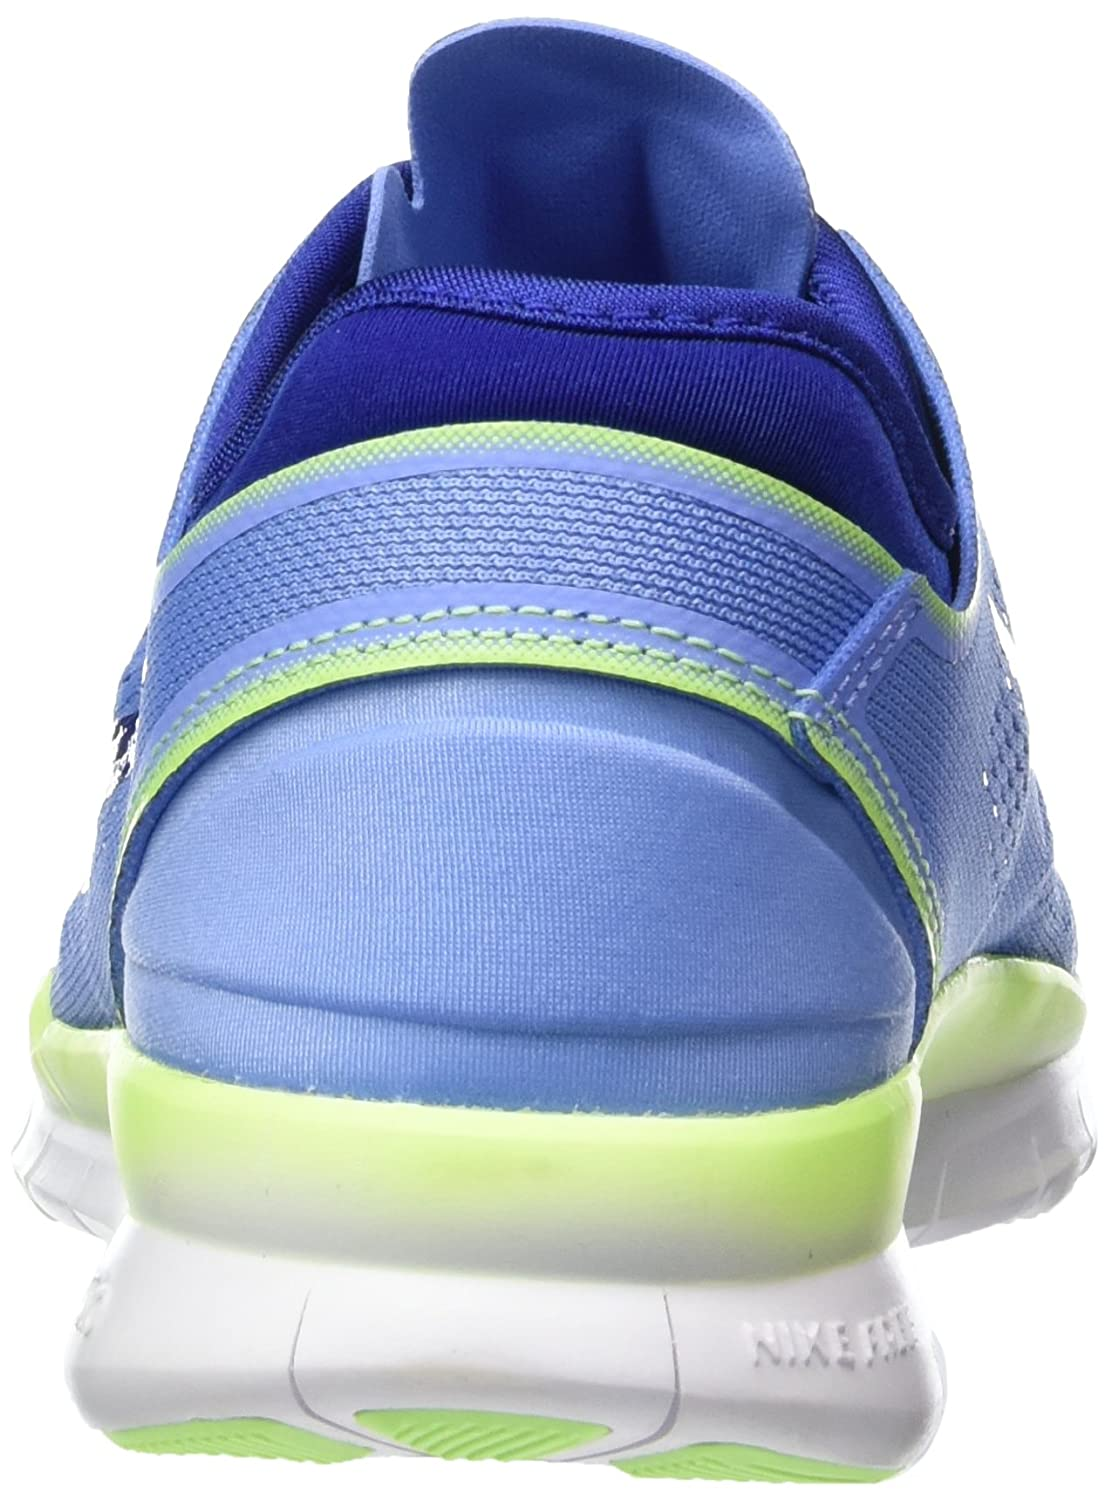 NIKE Men's Free 5.0 Tr Fit 5 Fabric Running Shoe Ghost B01BD5VYQO 7 B(M) US|Blue/ Ghost Shoe Green 172993